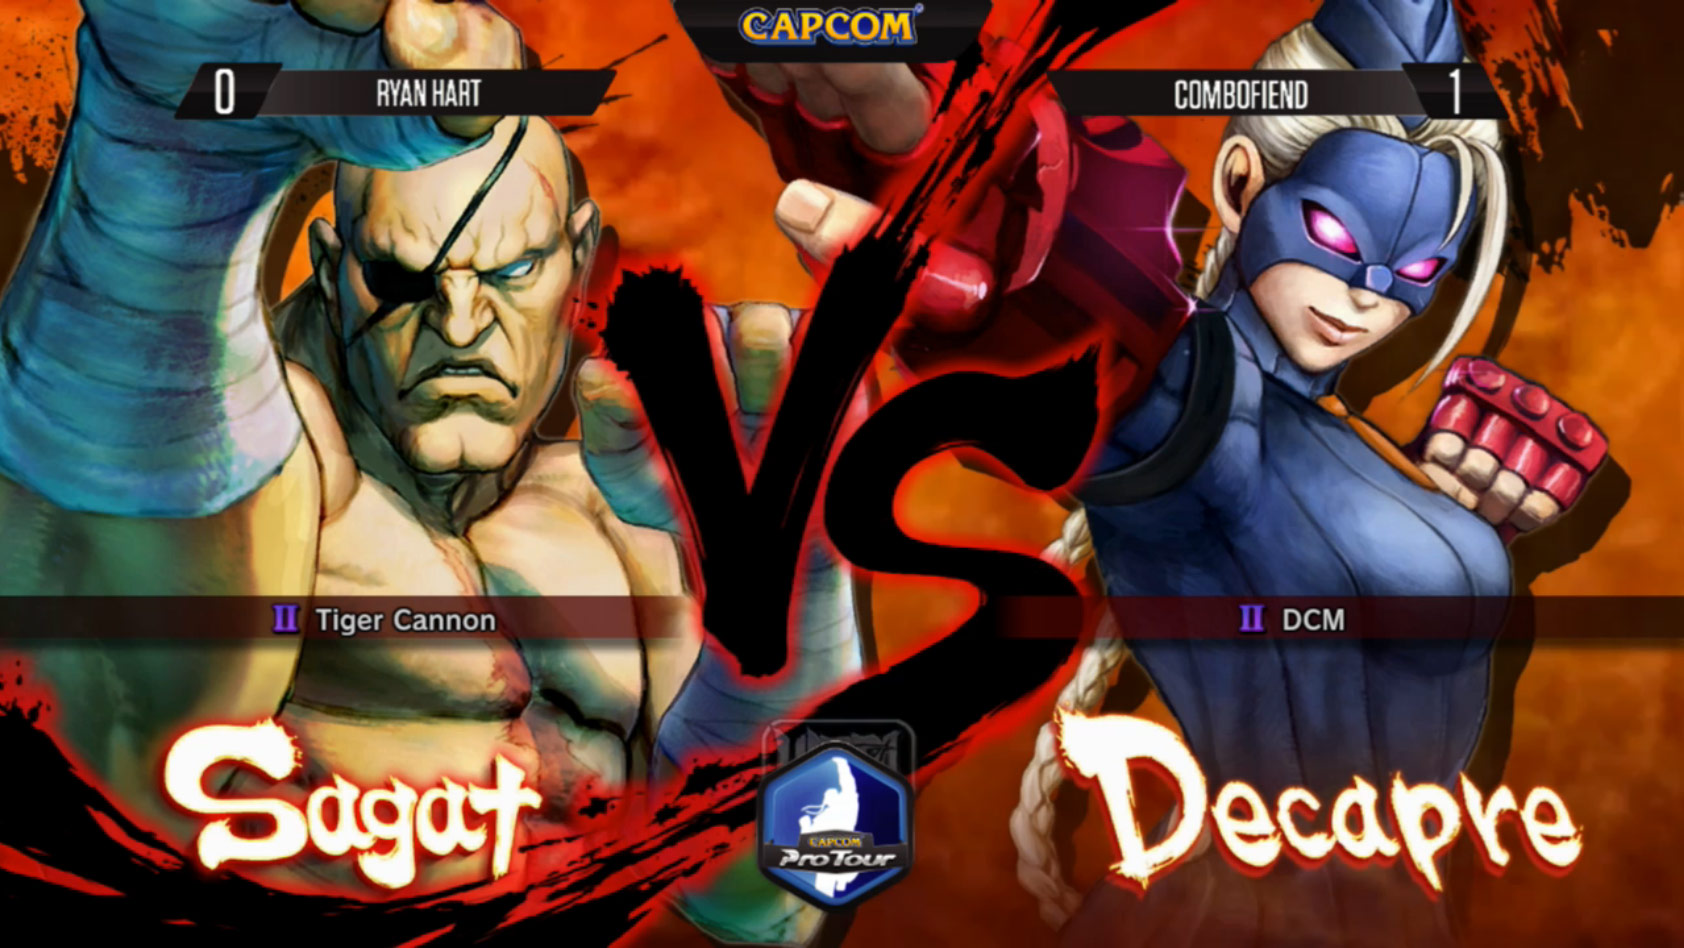 Decapre In Ultra Street Fighter 4 Along With New Character Select